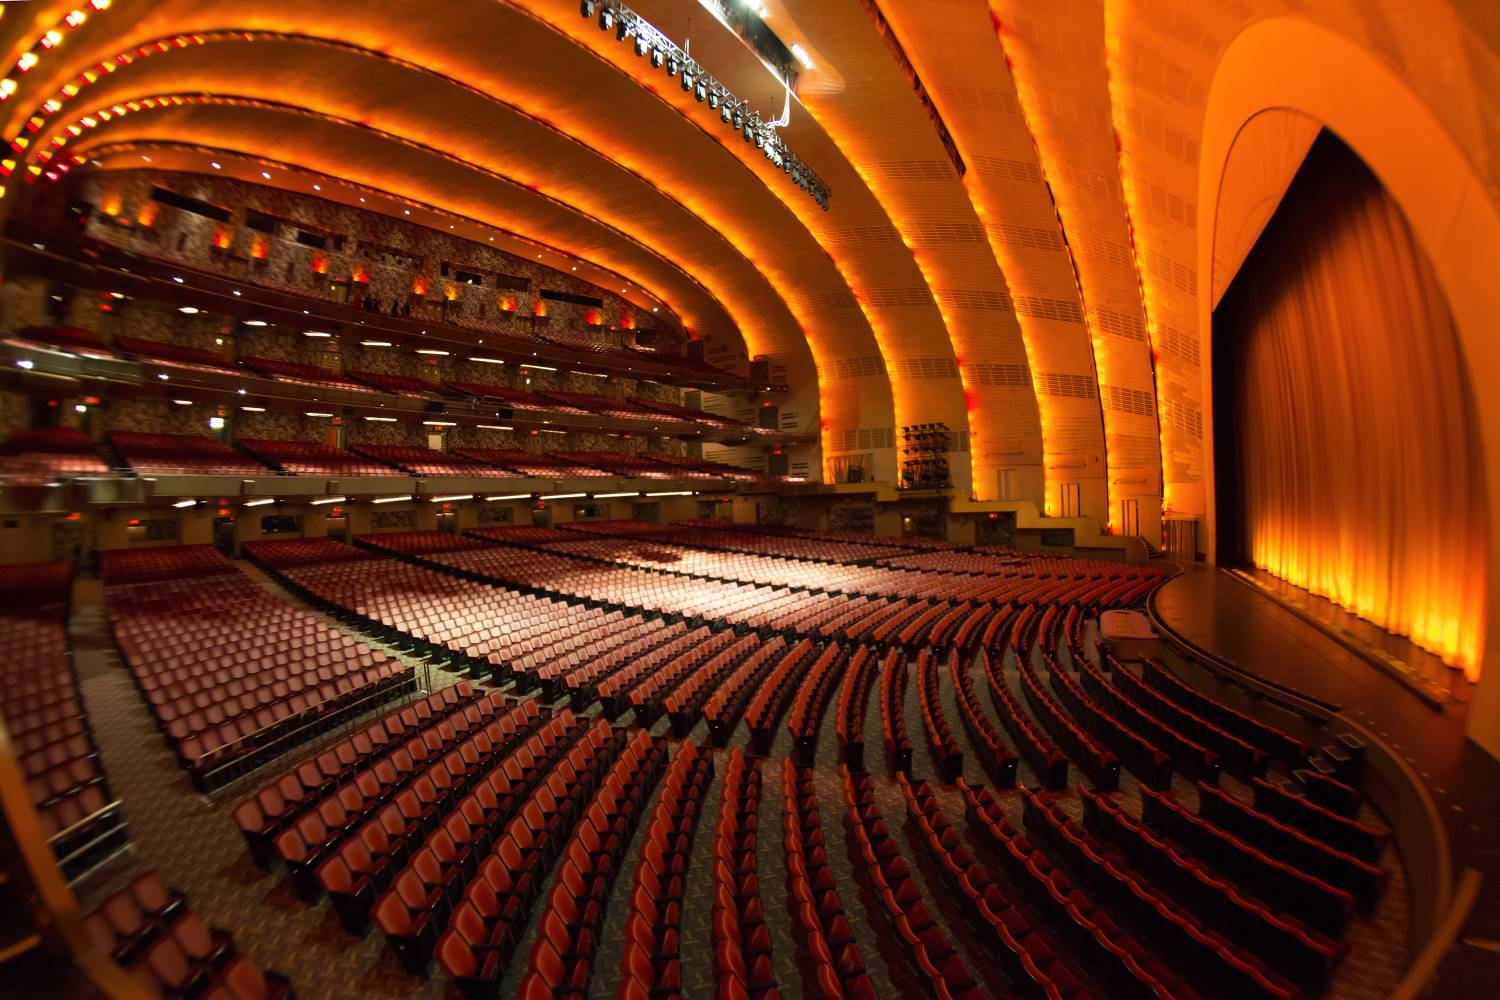 Go behind the scenes to get an insiders look at the hallowed art deco environs of Radio City Music Hall on a venue tour